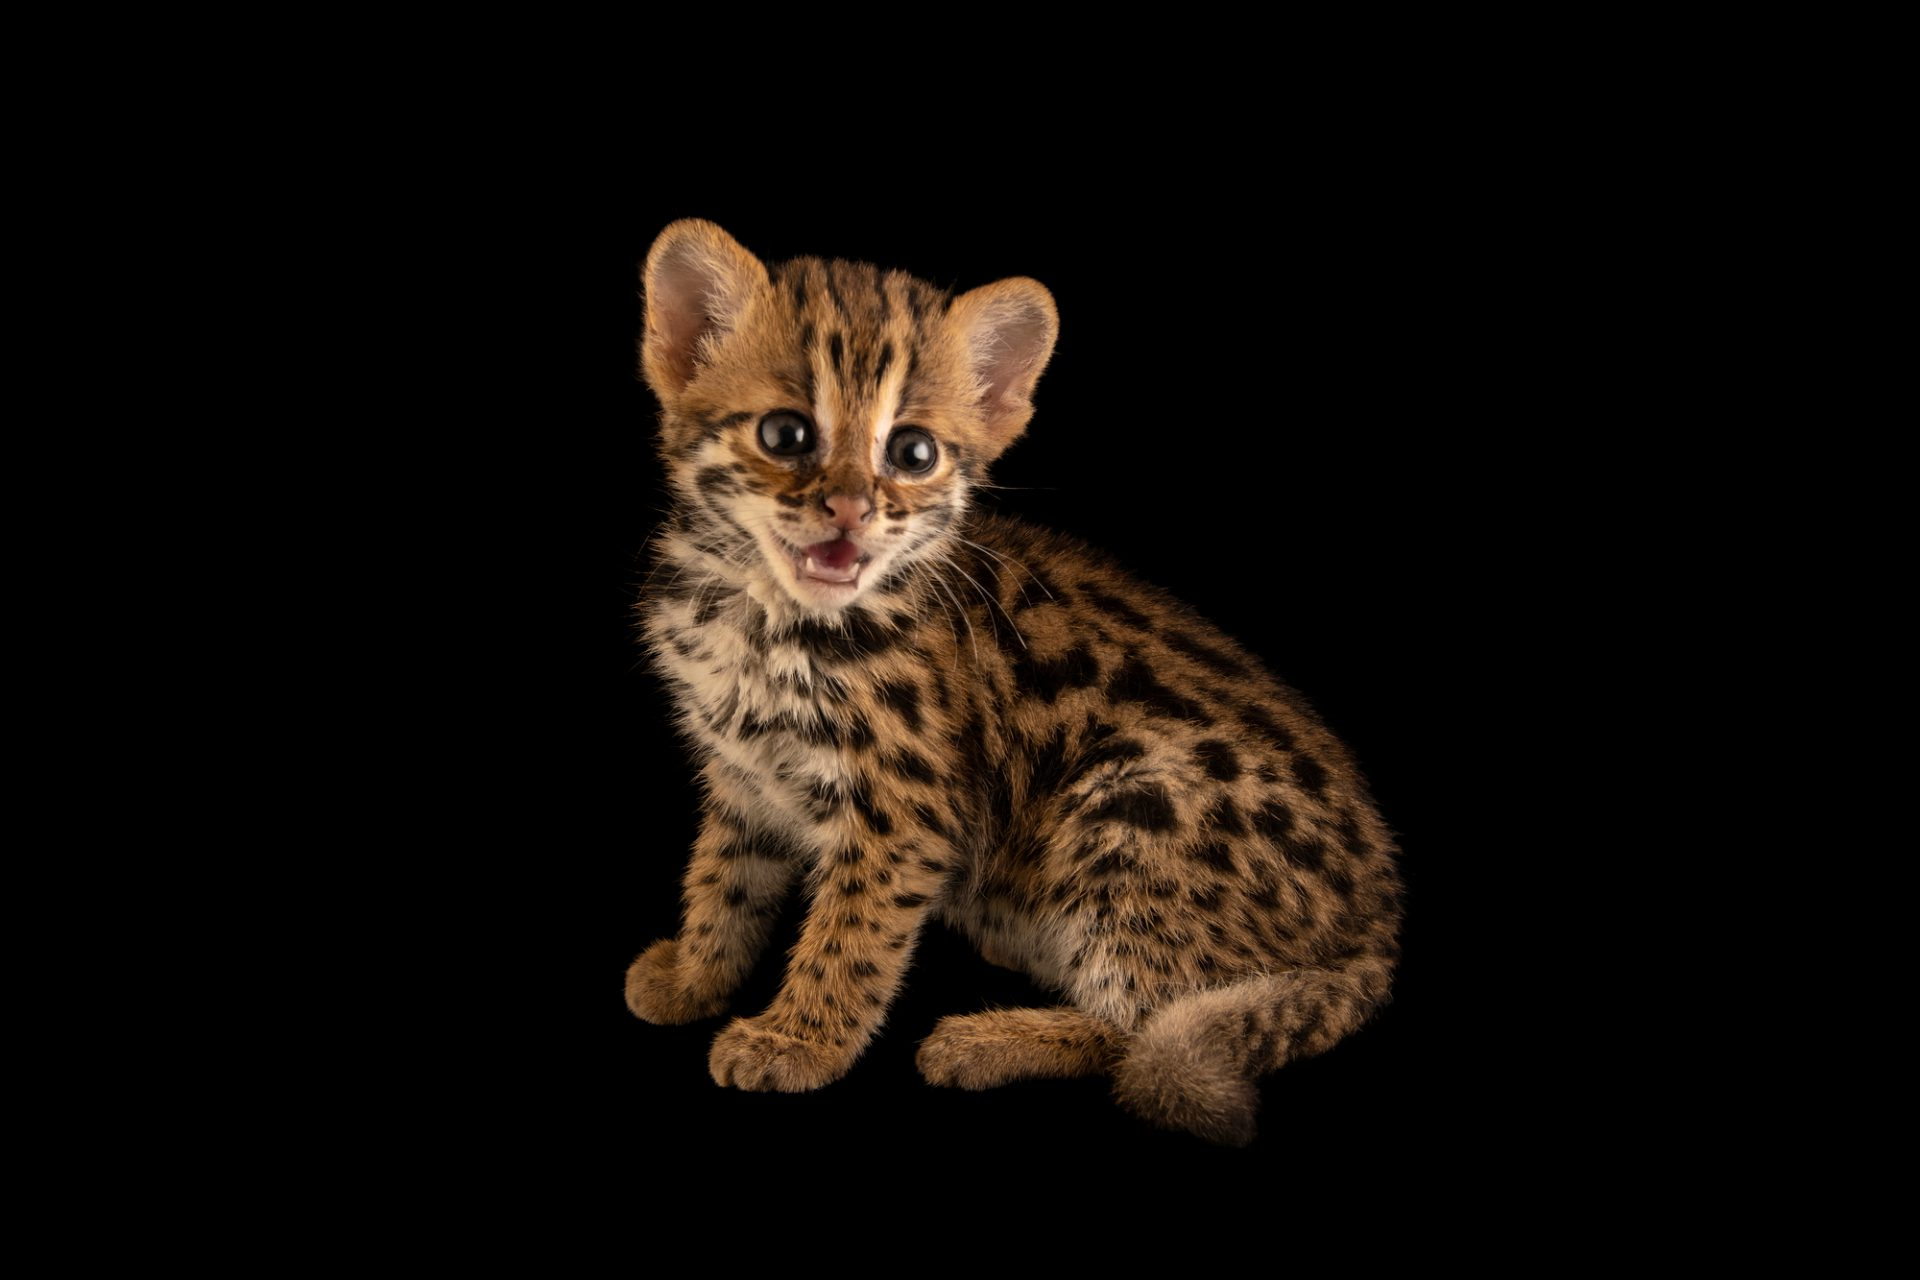 Photo: Asian leopard cat kitten (Prionailurus bengalensis bengalensis) at the Angkor Centre for Conservation of Biodiversity (ACCB) in Siem Reap, Cambodia.